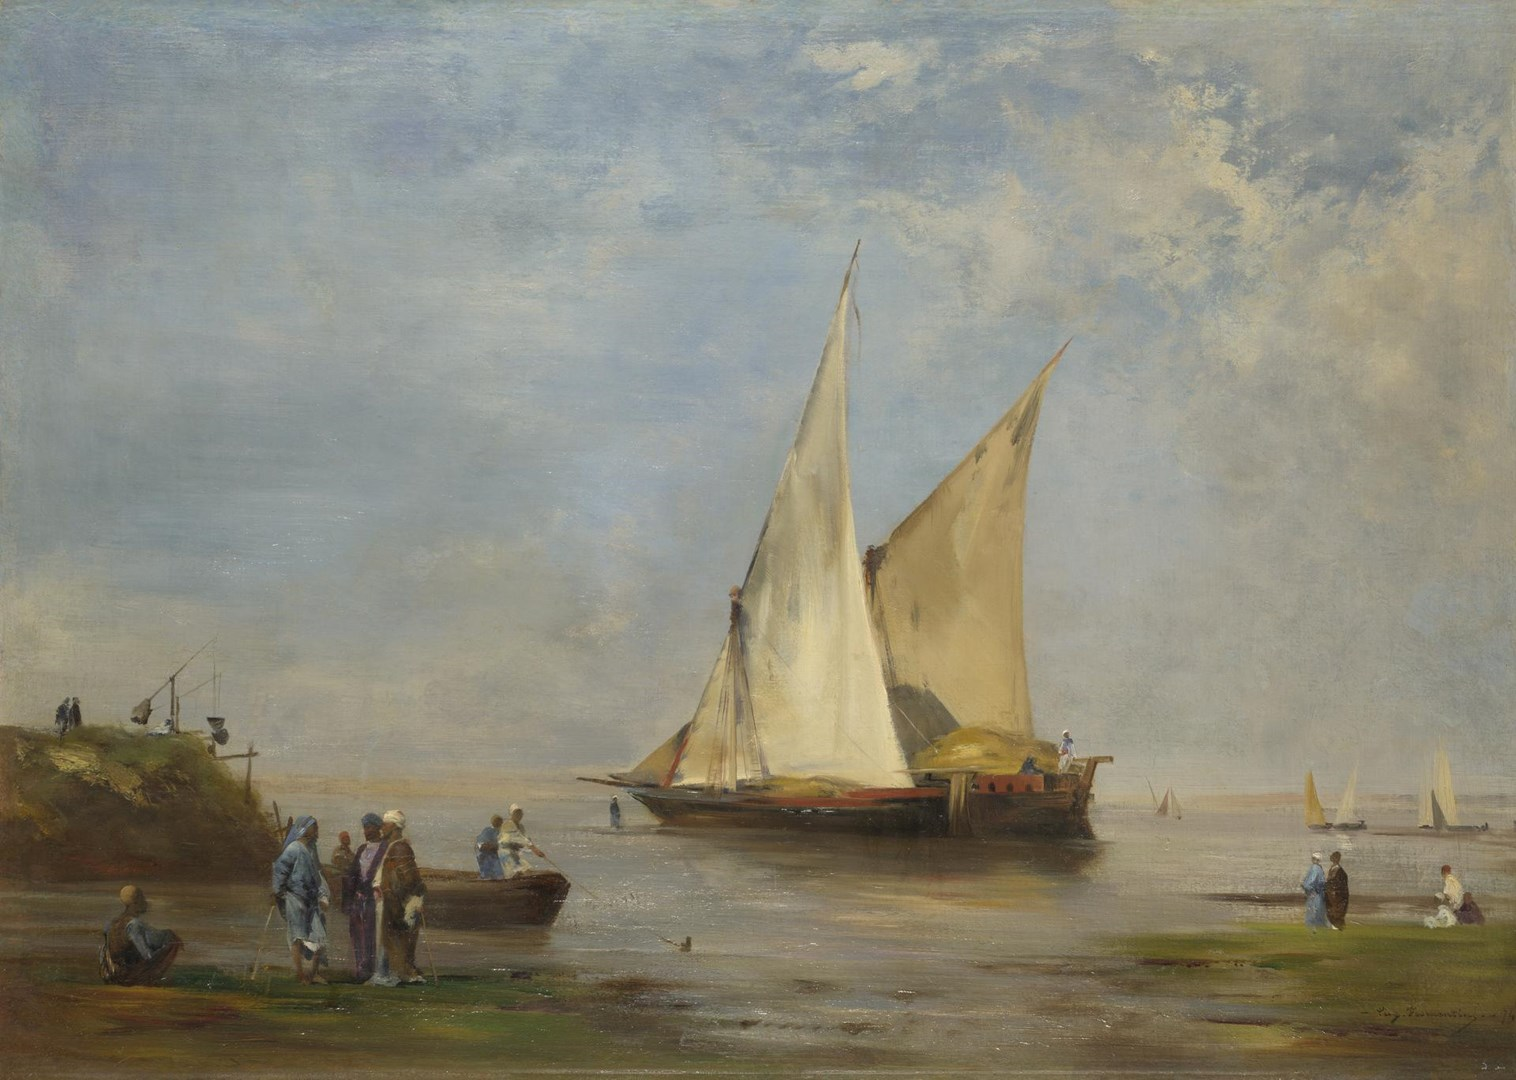 The Banks of the Nile by Eugène Fromentin